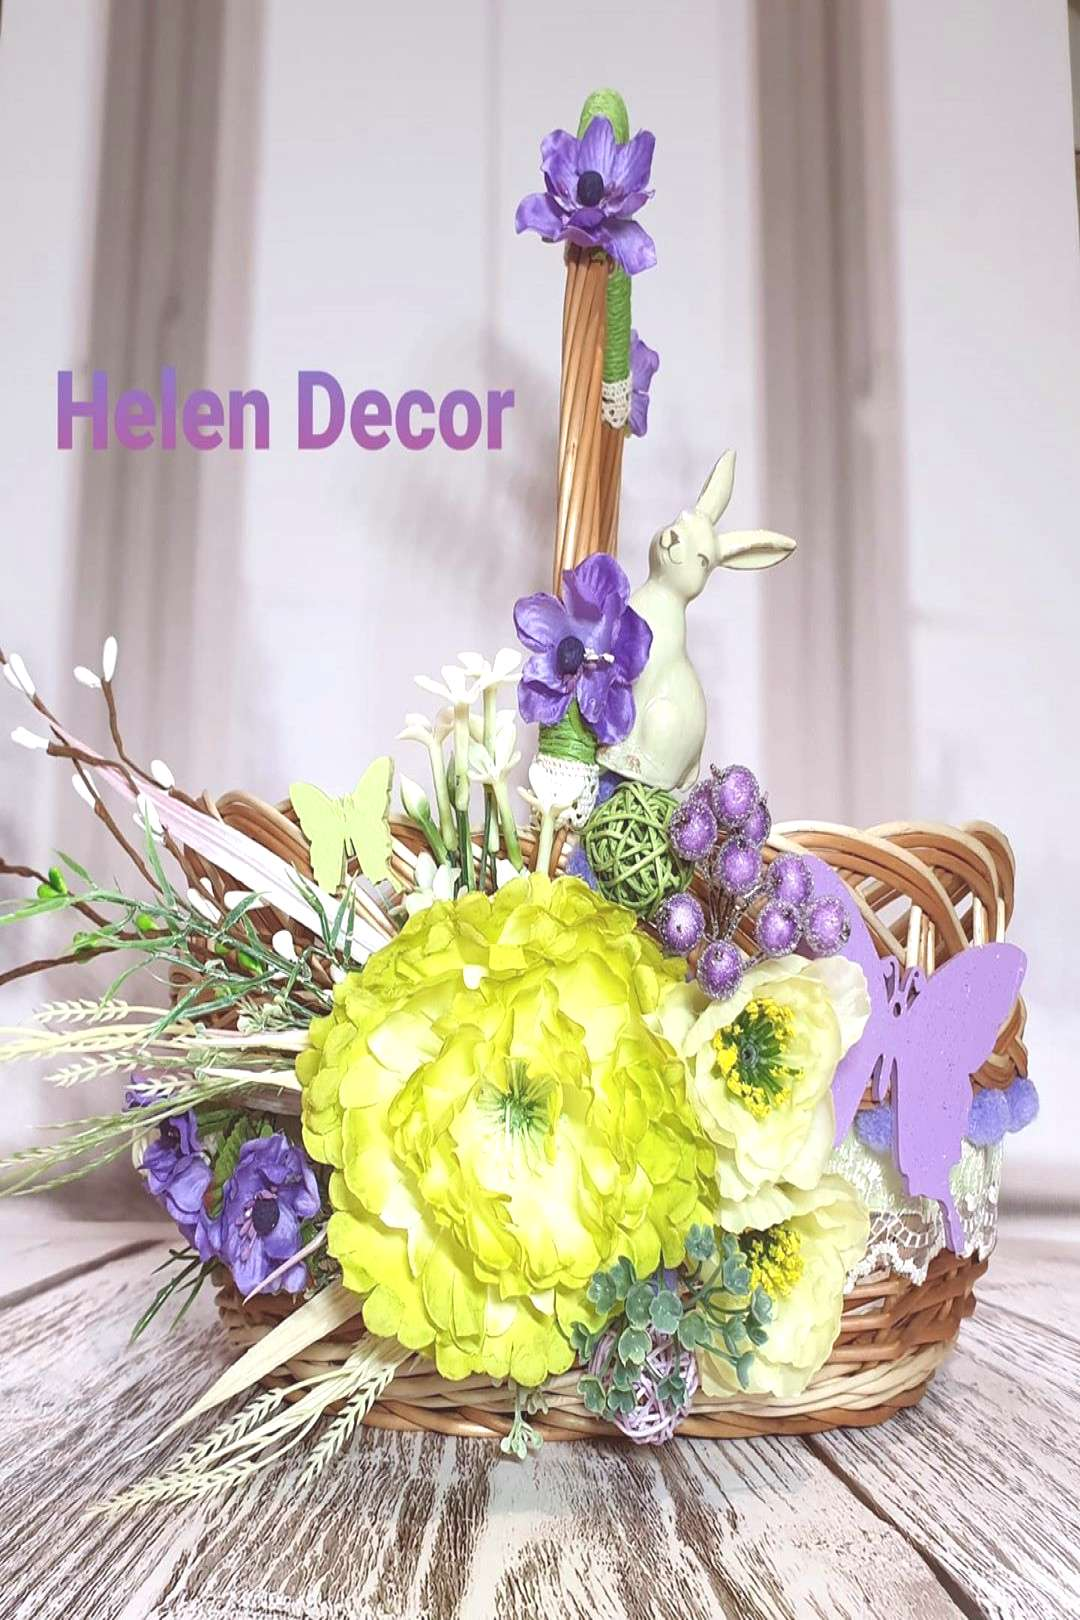 Image may contain: flower and plant, text that says 'Helen Decor'